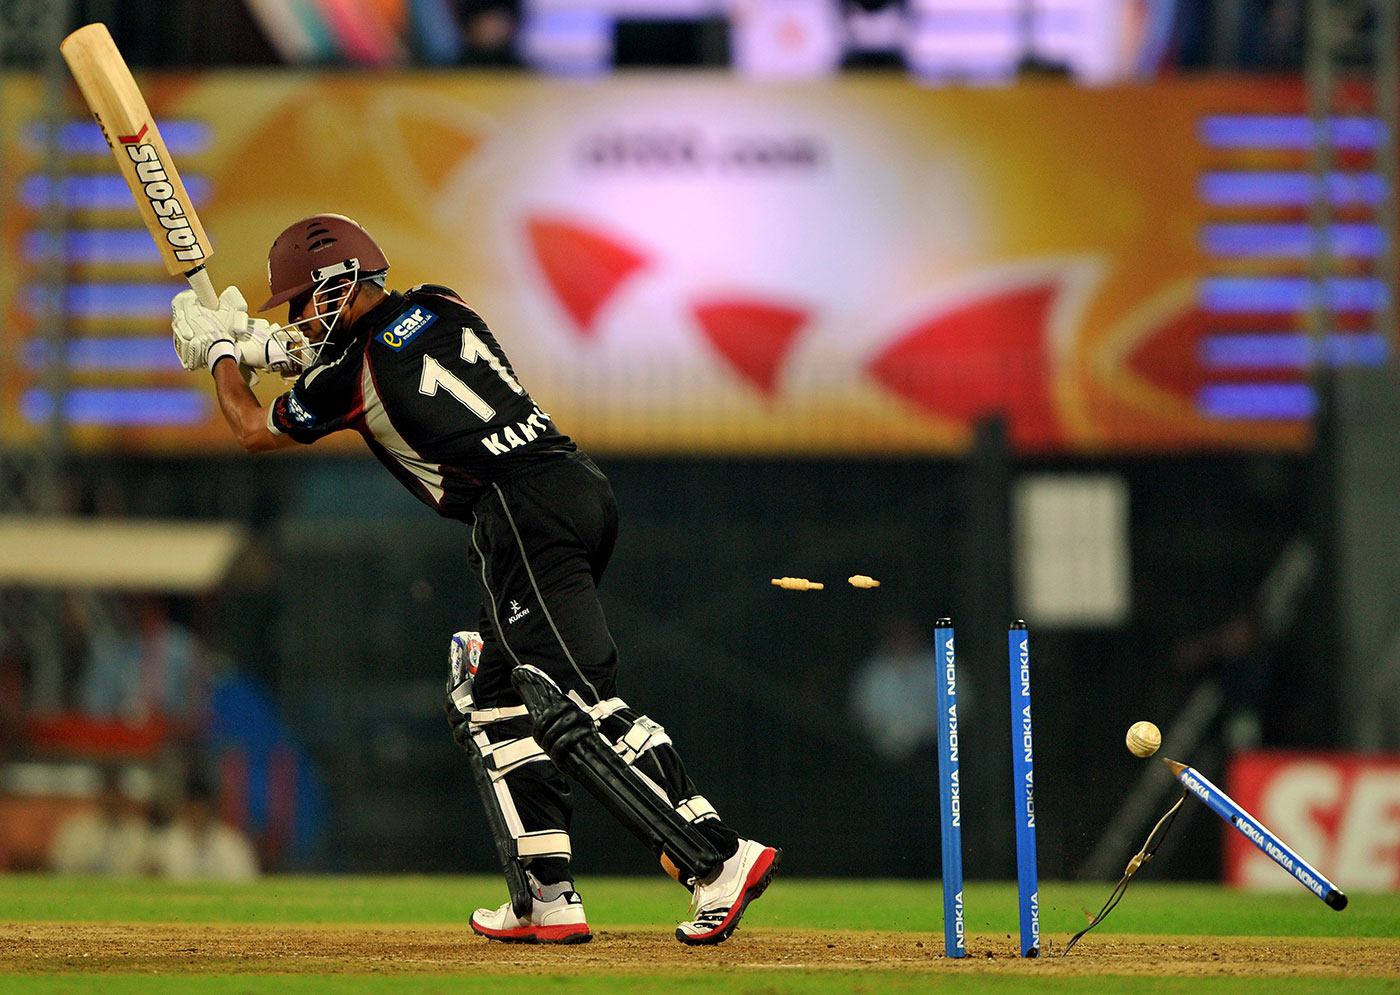 In the space of an over, Somerset went from 141 for 3 to 147 for 7 in the Champions League final of 2011